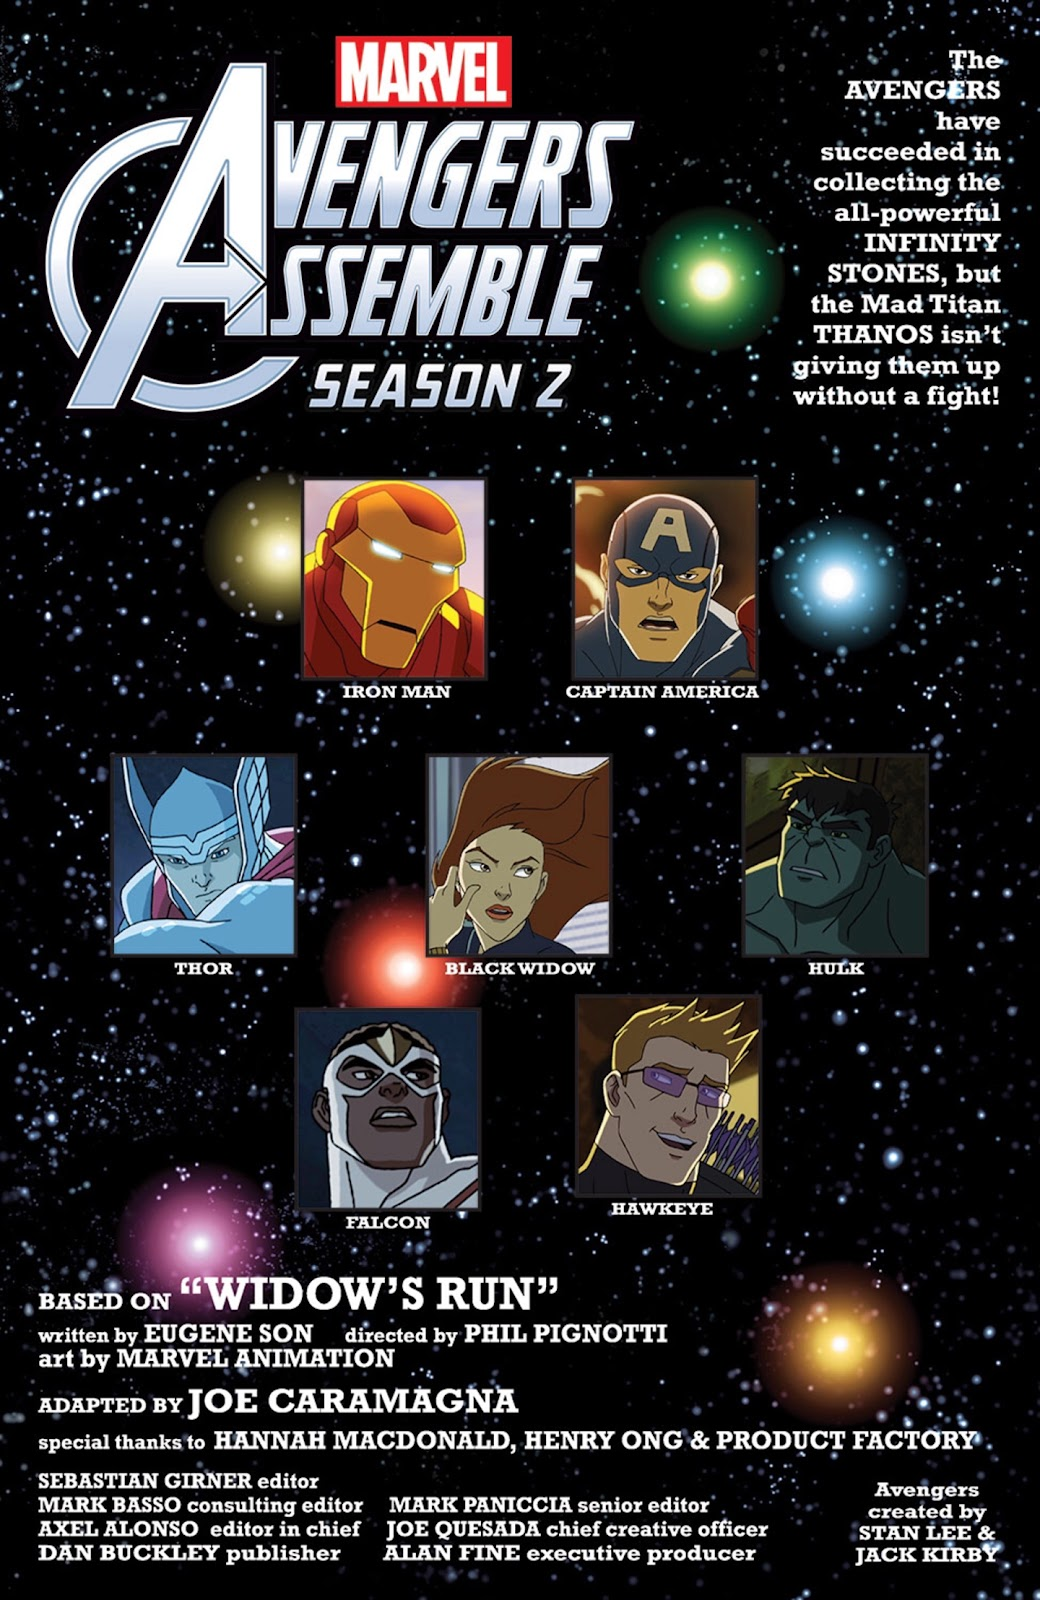 Read online Marvel Universe Avengers Assemble Season 2 comic -  Issue #11 - 3